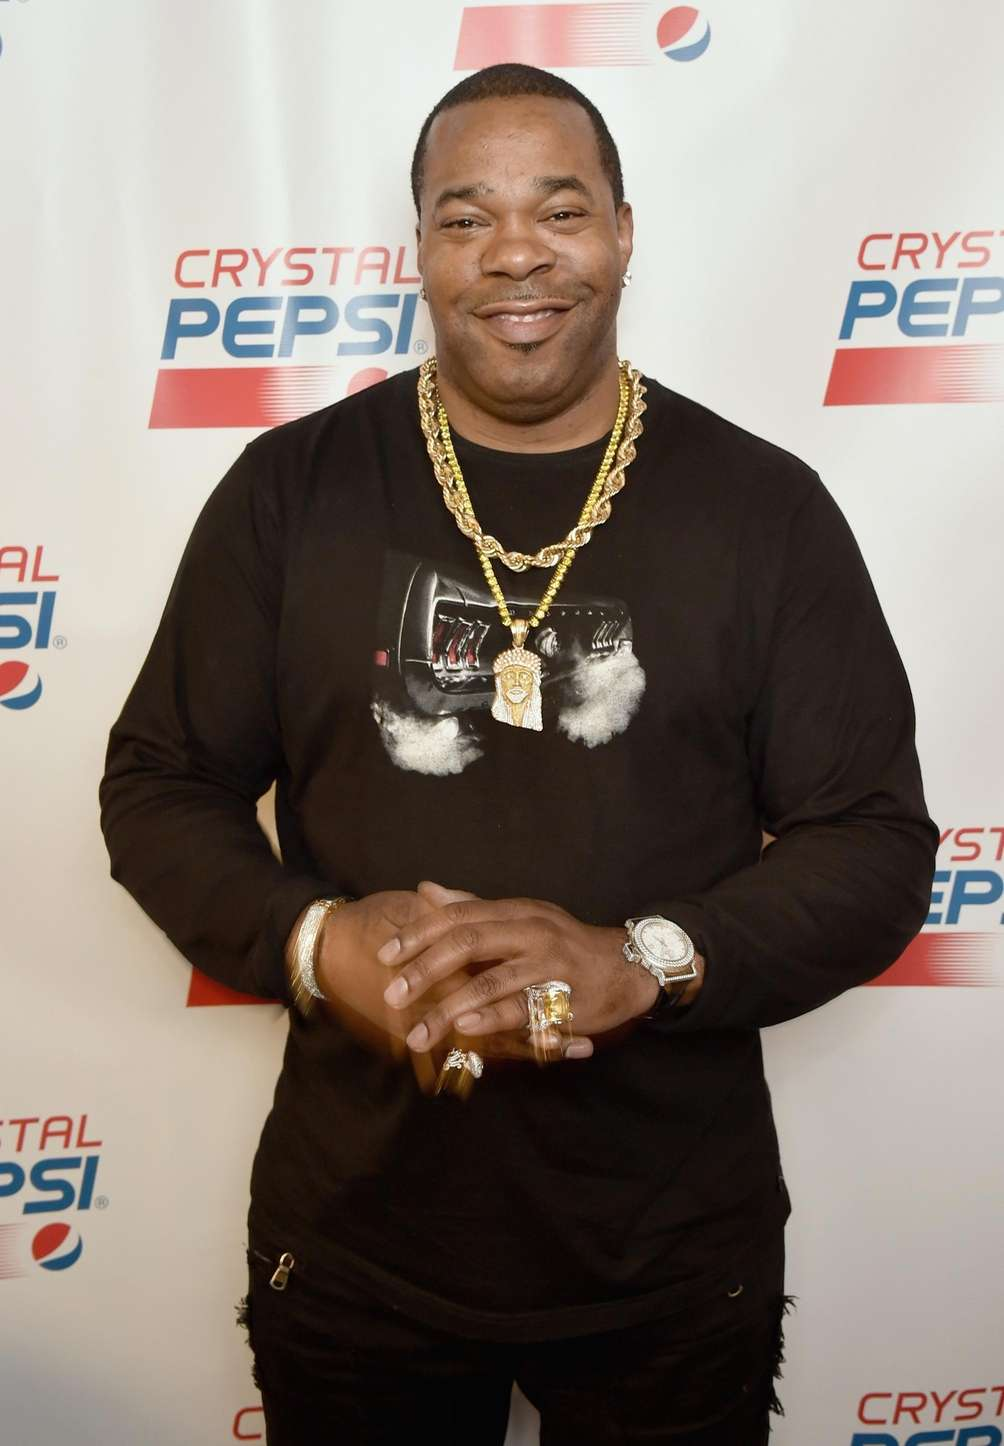 Busta Rhymes attends the Crystal Pepsi Throwback Tour